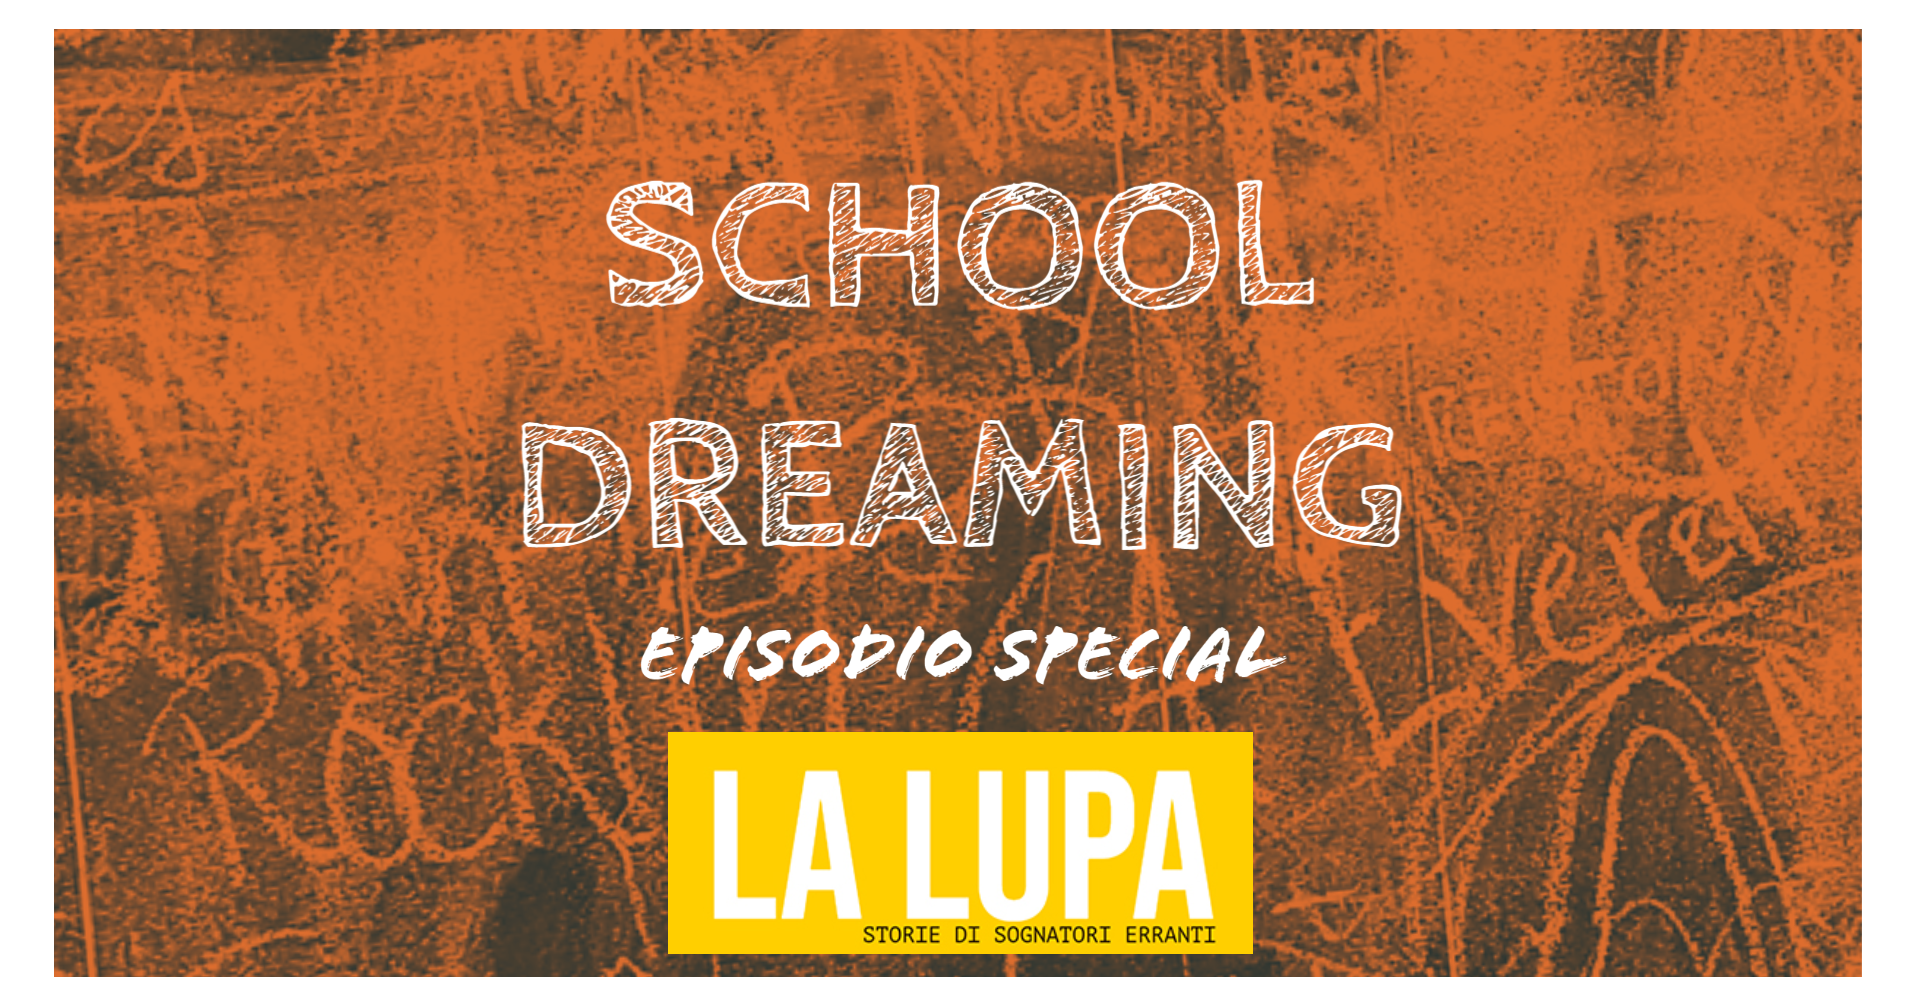 LA LUPA - EP. SPECIAL - SCHOOLDREAMING!